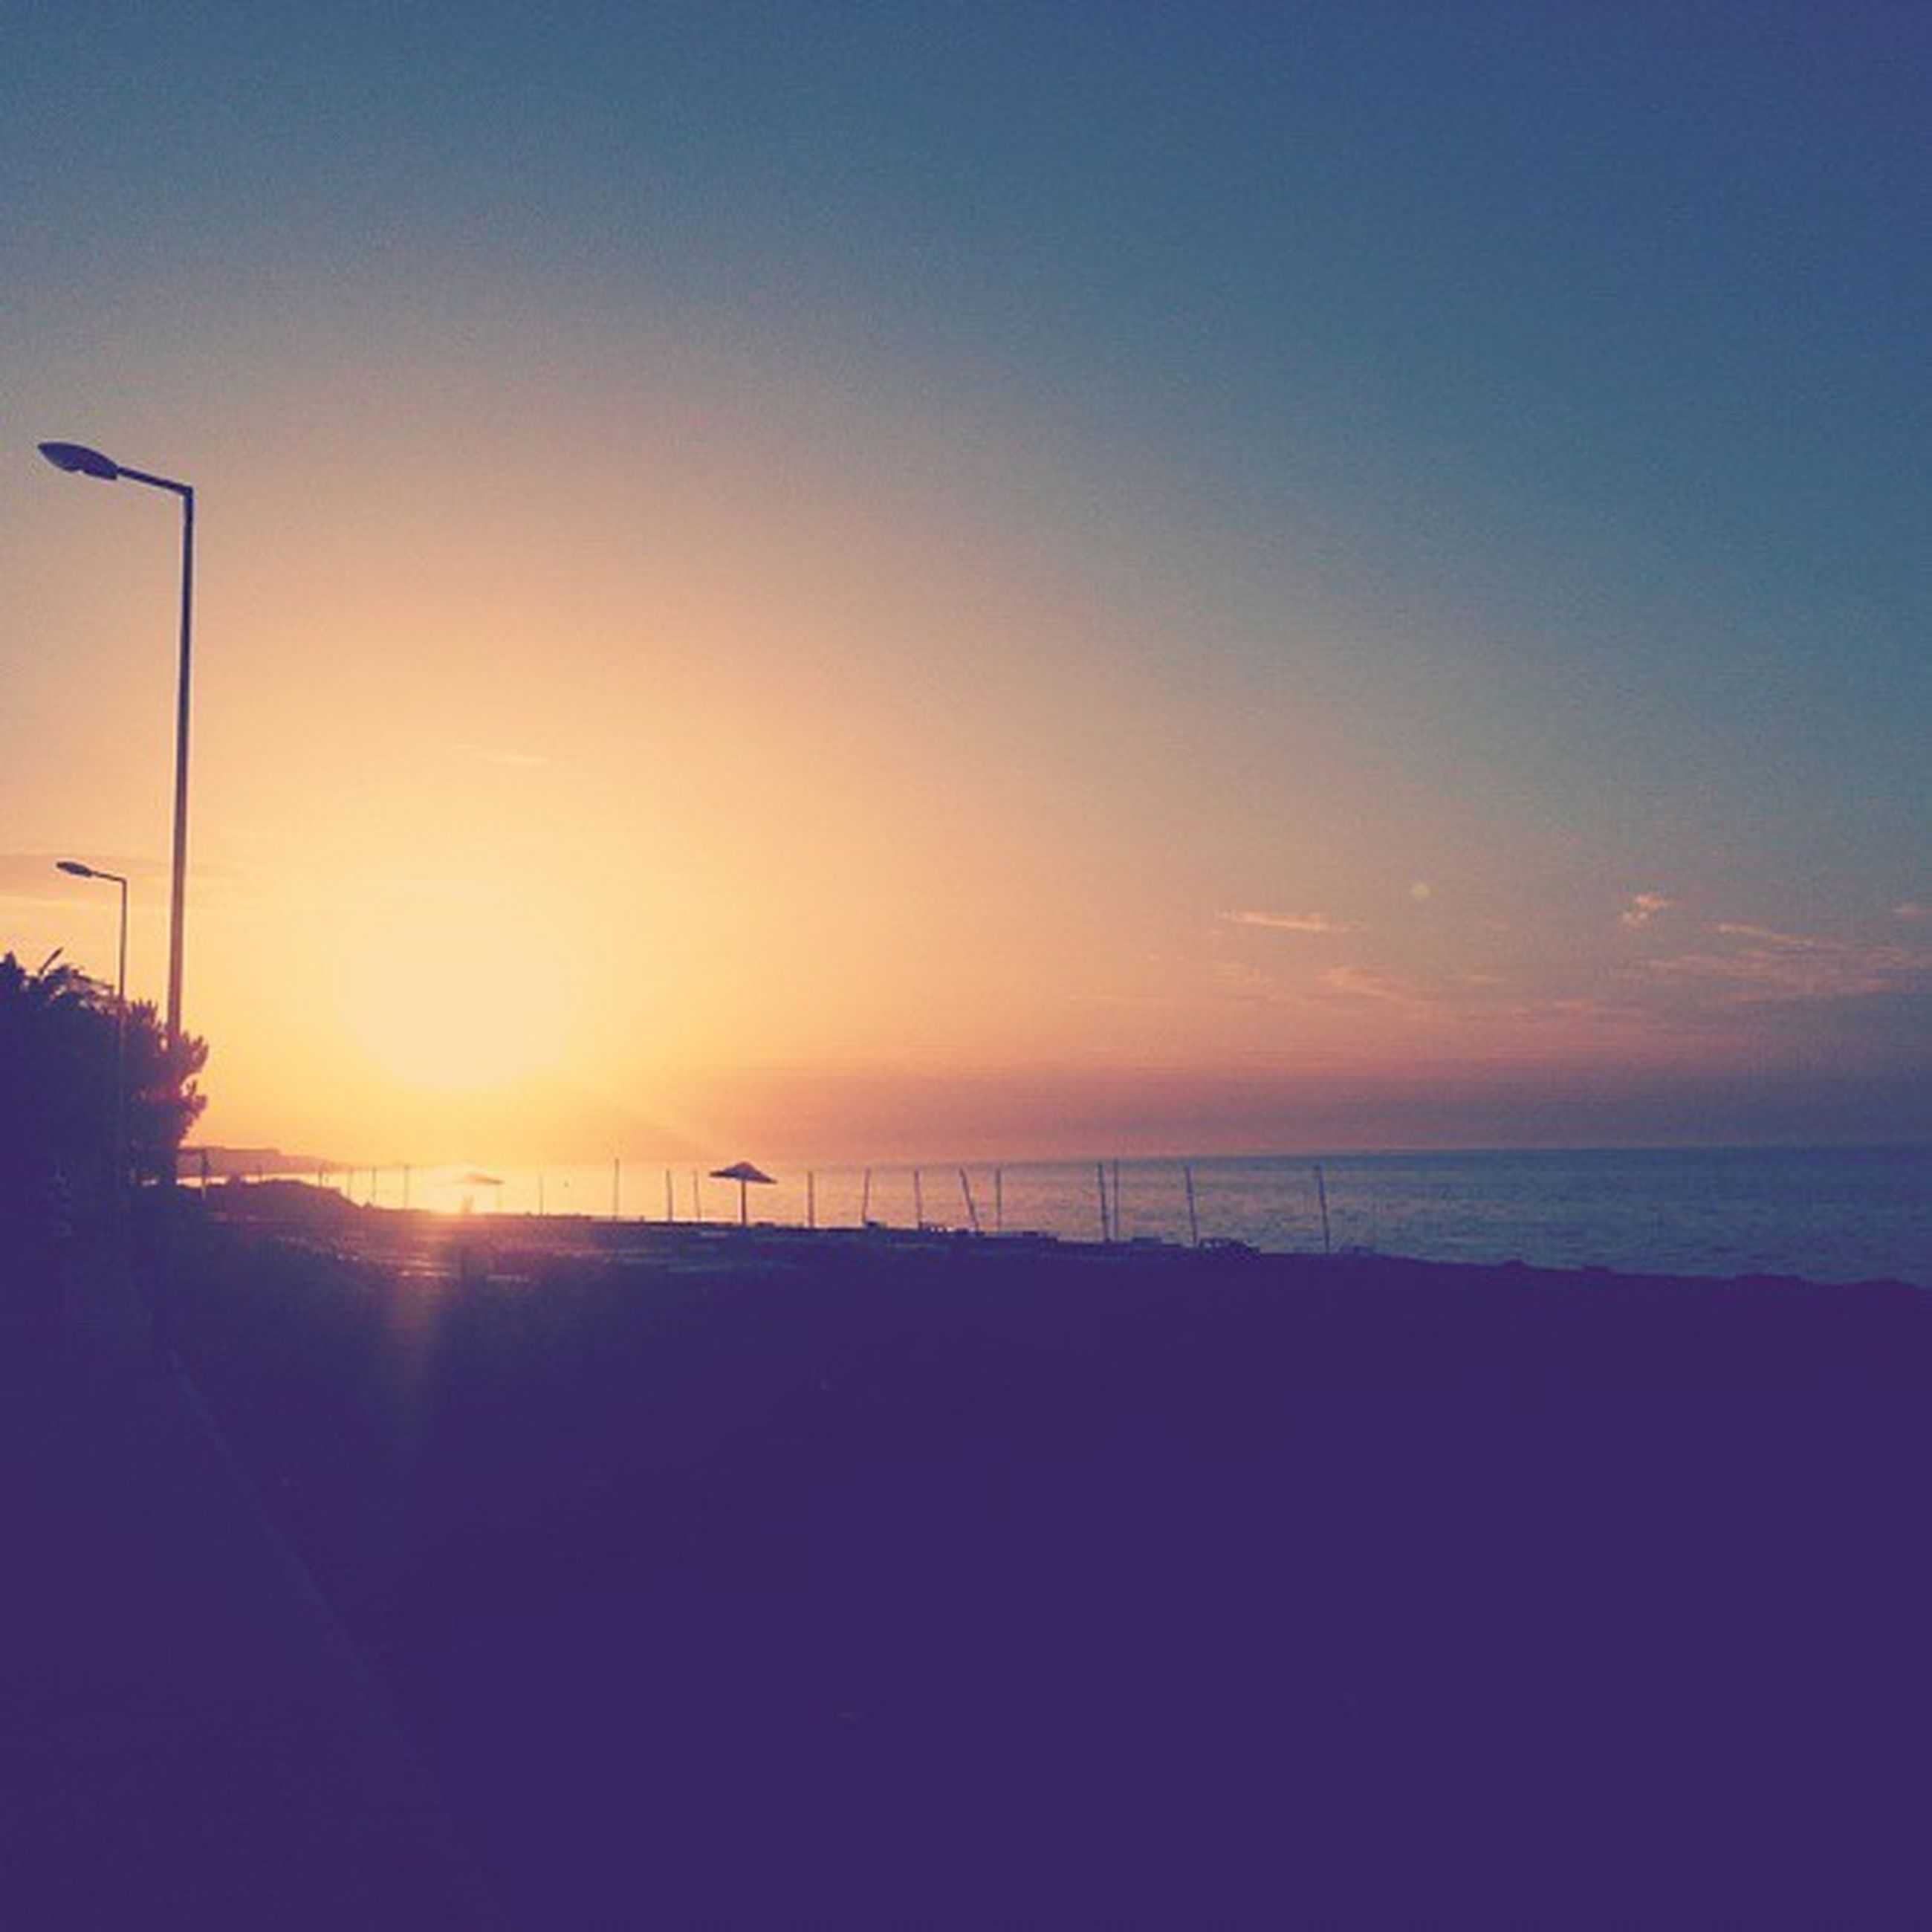 sunset, sea, horizon over water, tranquil scene, water, scenics, tranquility, silhouette, beauty in nature, sun, sky, nature, idyllic, copy space, beach, orange color, sunlight, clear sky, shore, outdoors